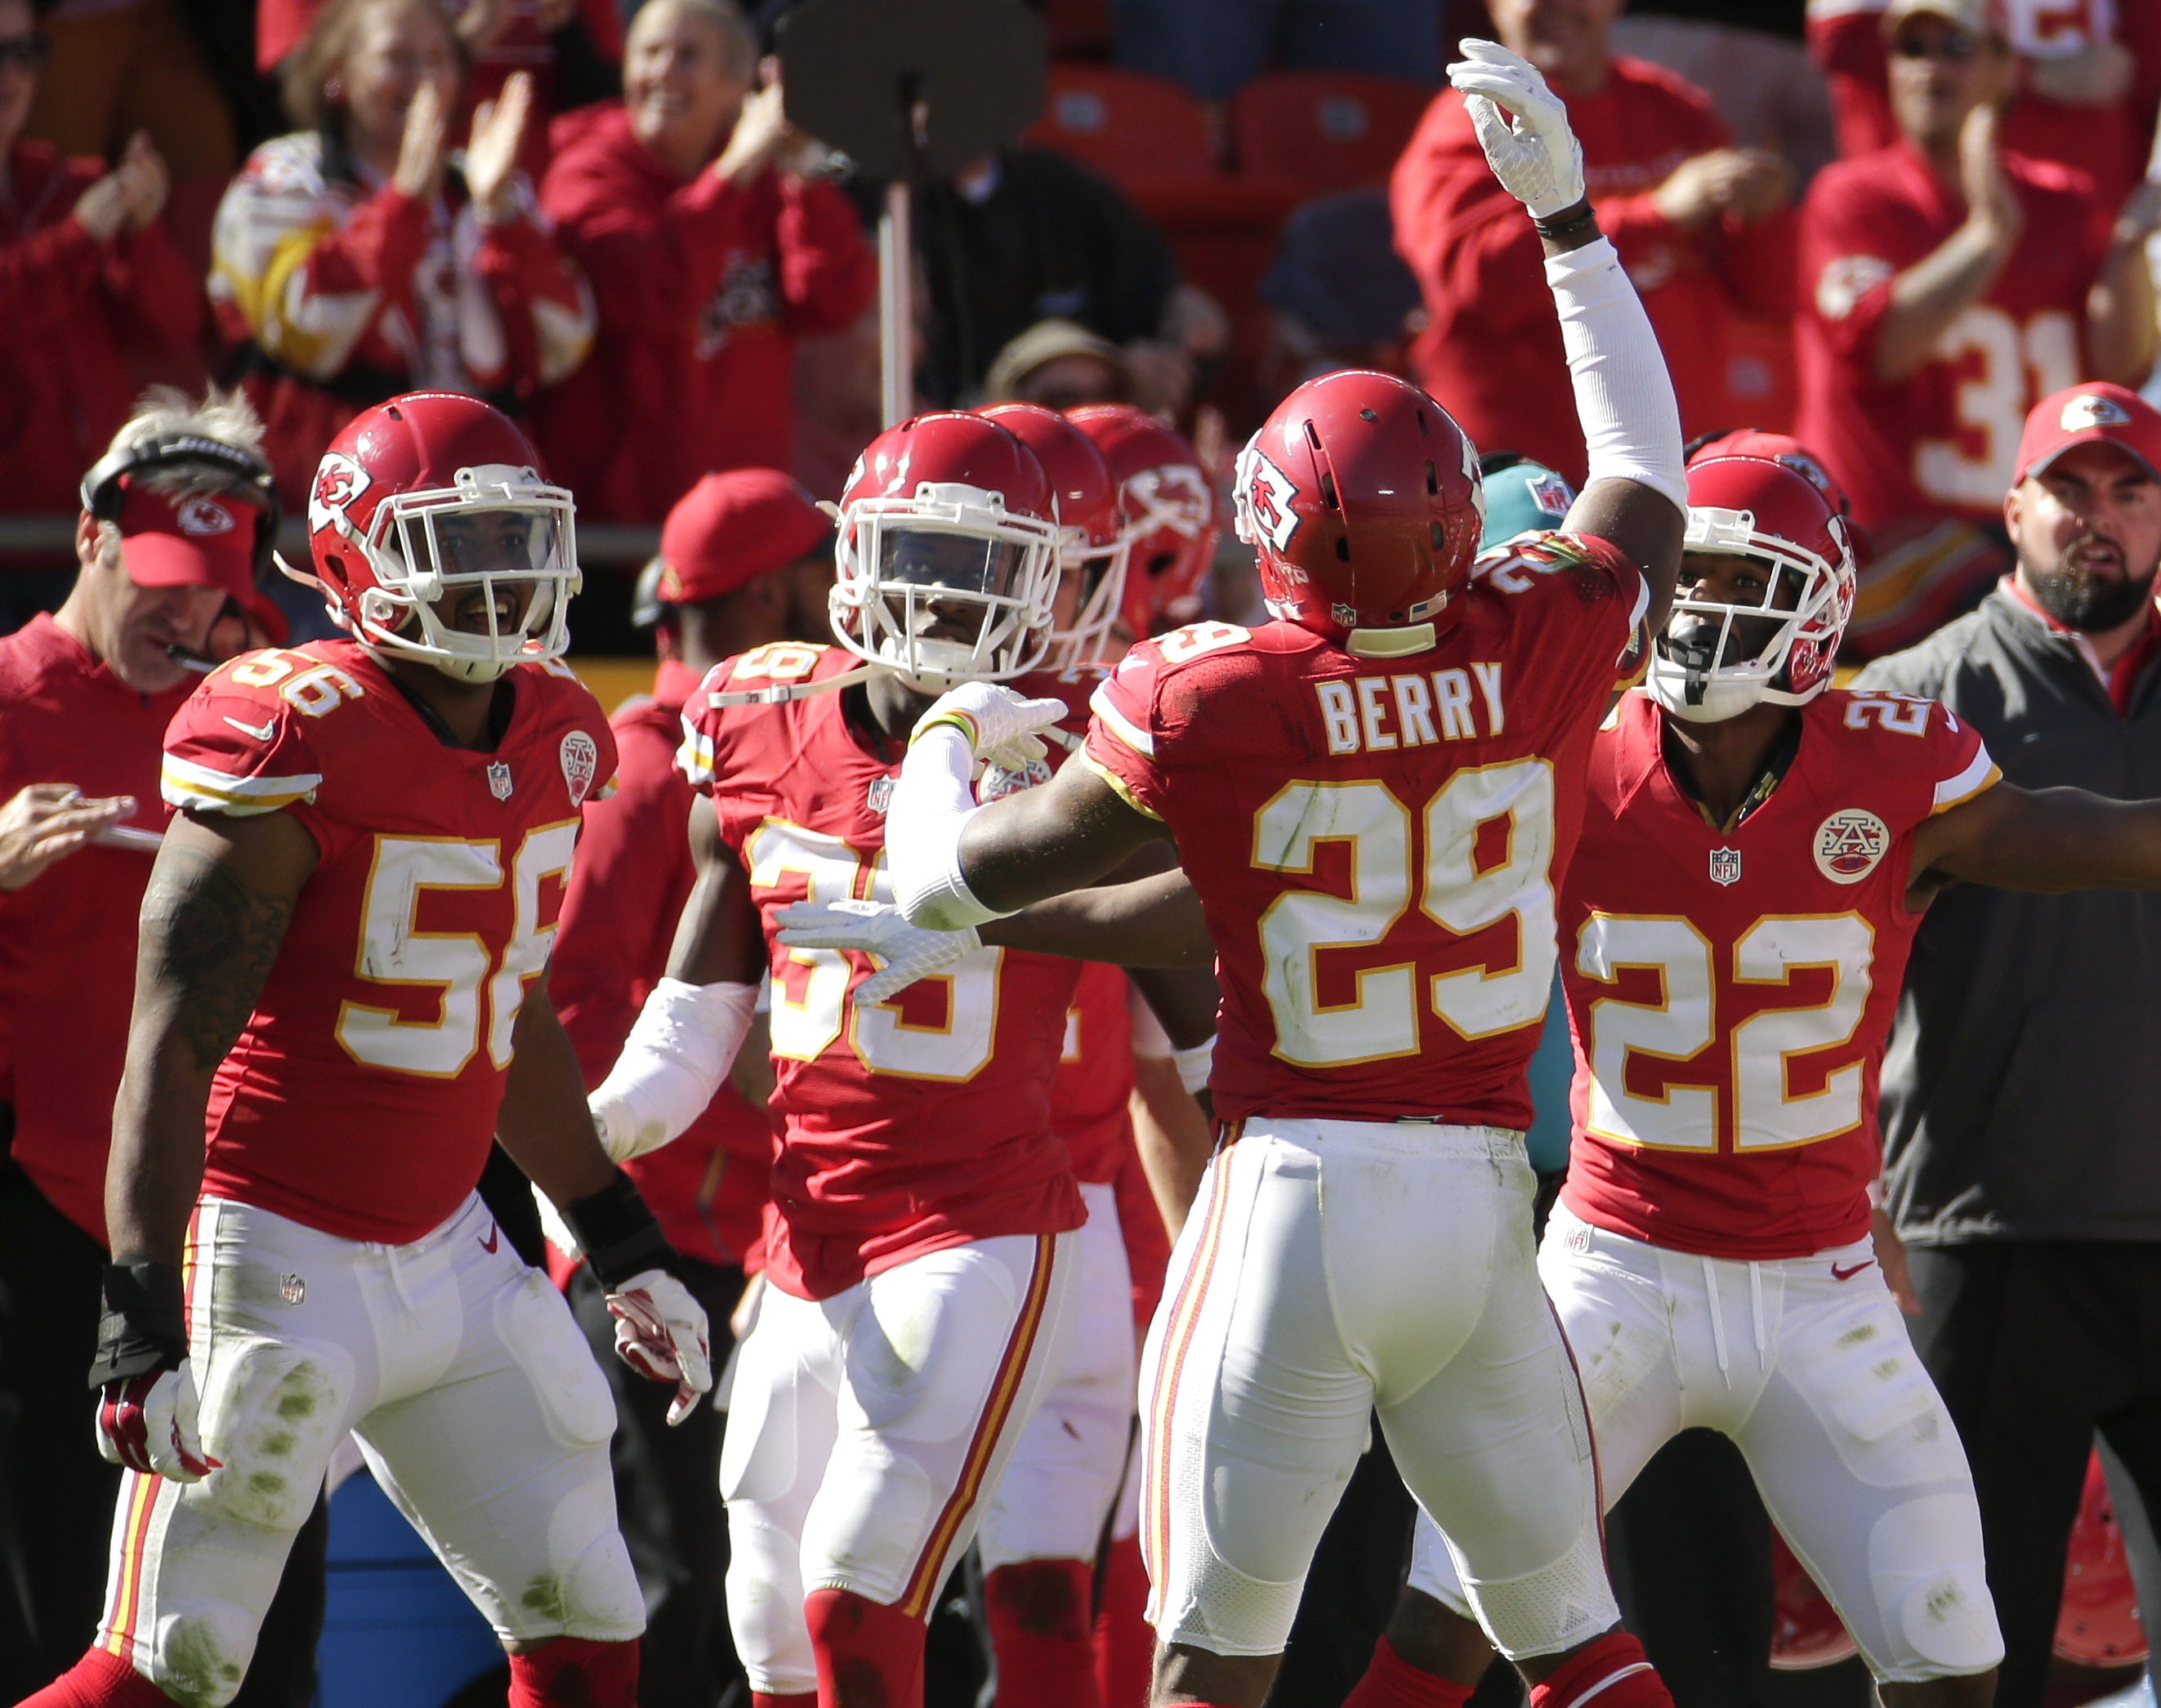 Kansas City Chiefs defensive back Eric Berry (29) celebrates with teammates after he intercepted a ball from Pittsburgh Steelers quarterback Landry Jones for a turnover during the second half of an NFL football game in Kansas City, Mo., Sunday, Oct. 25, 2